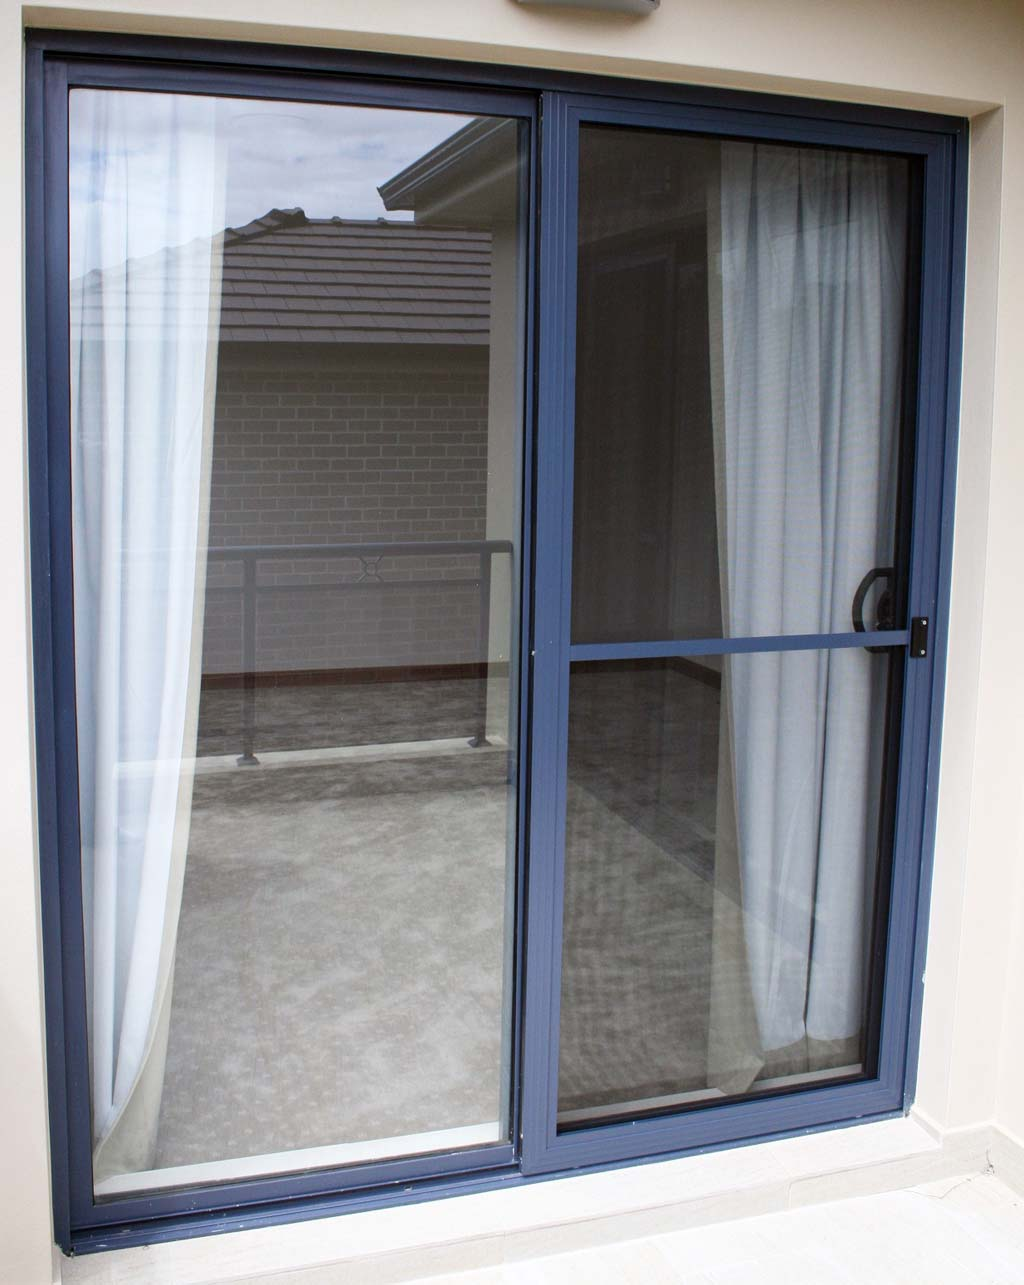 Types of sliding glass door for patio door ellecrafts for Different types of patio doors